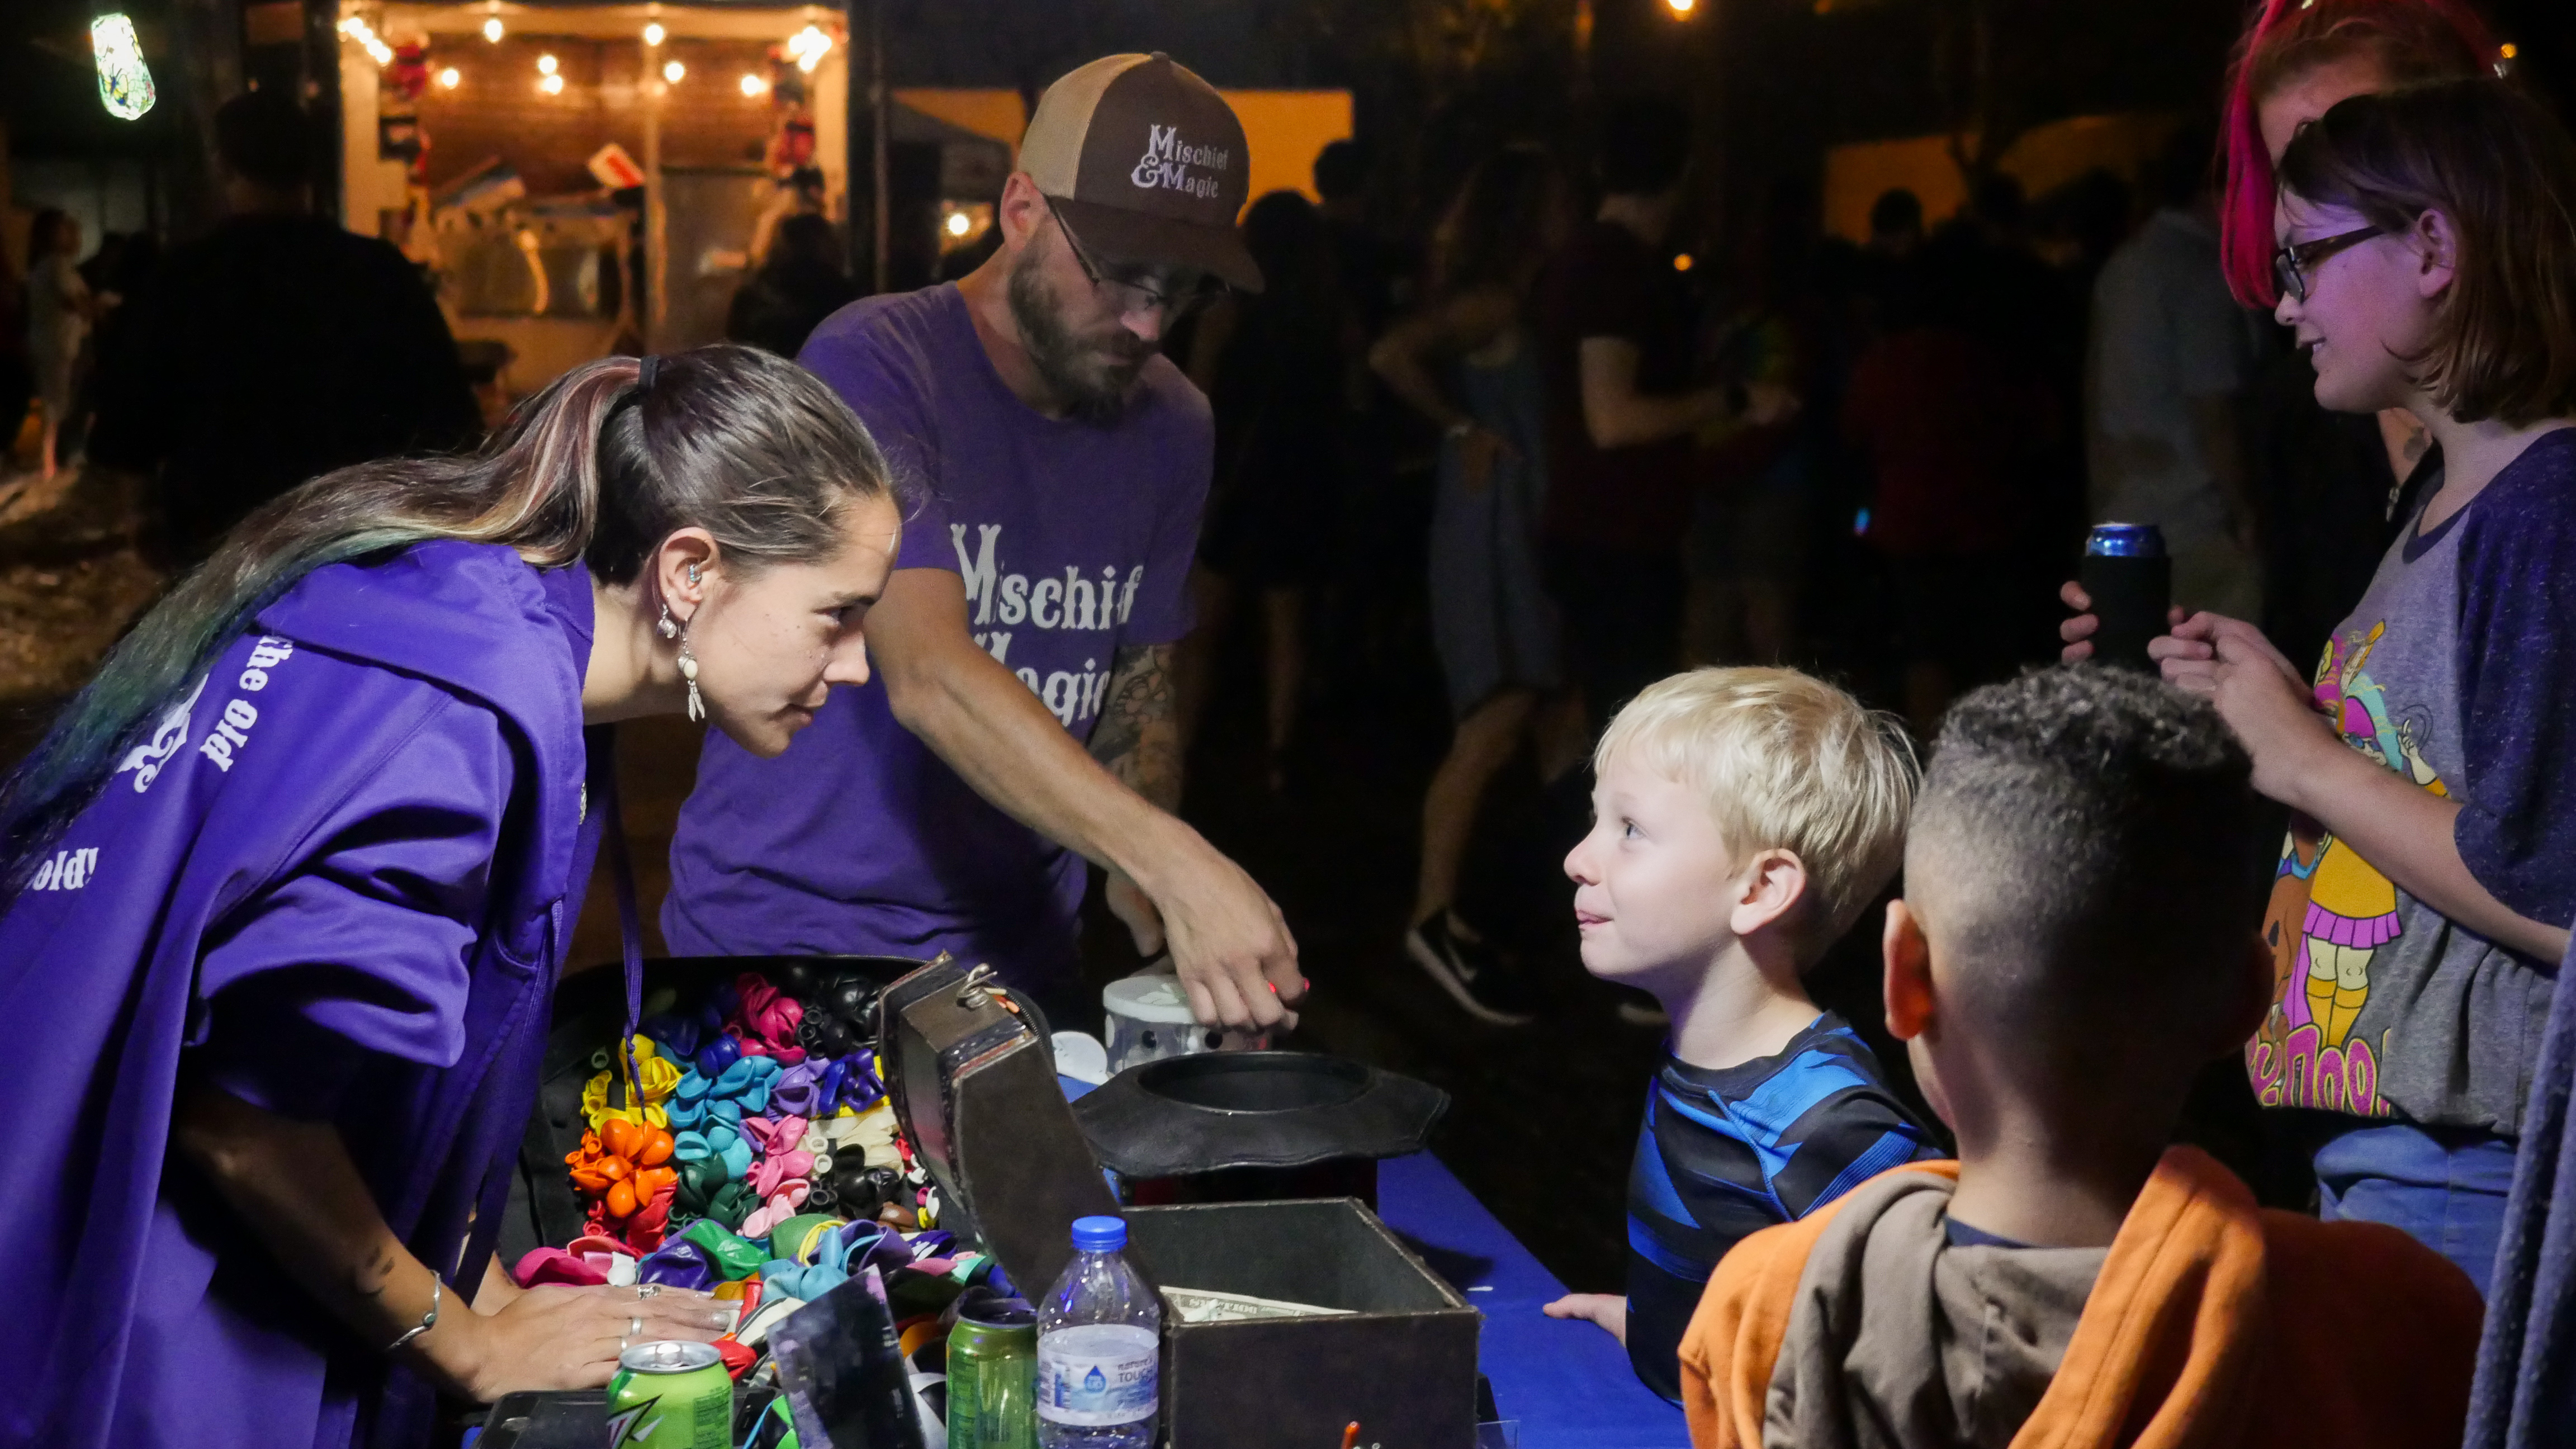 IgNight Market taking place in the Broadway District of downtown Green Bay, Saturday, September 21, 2019 (WCWF/ Beni Petersen)